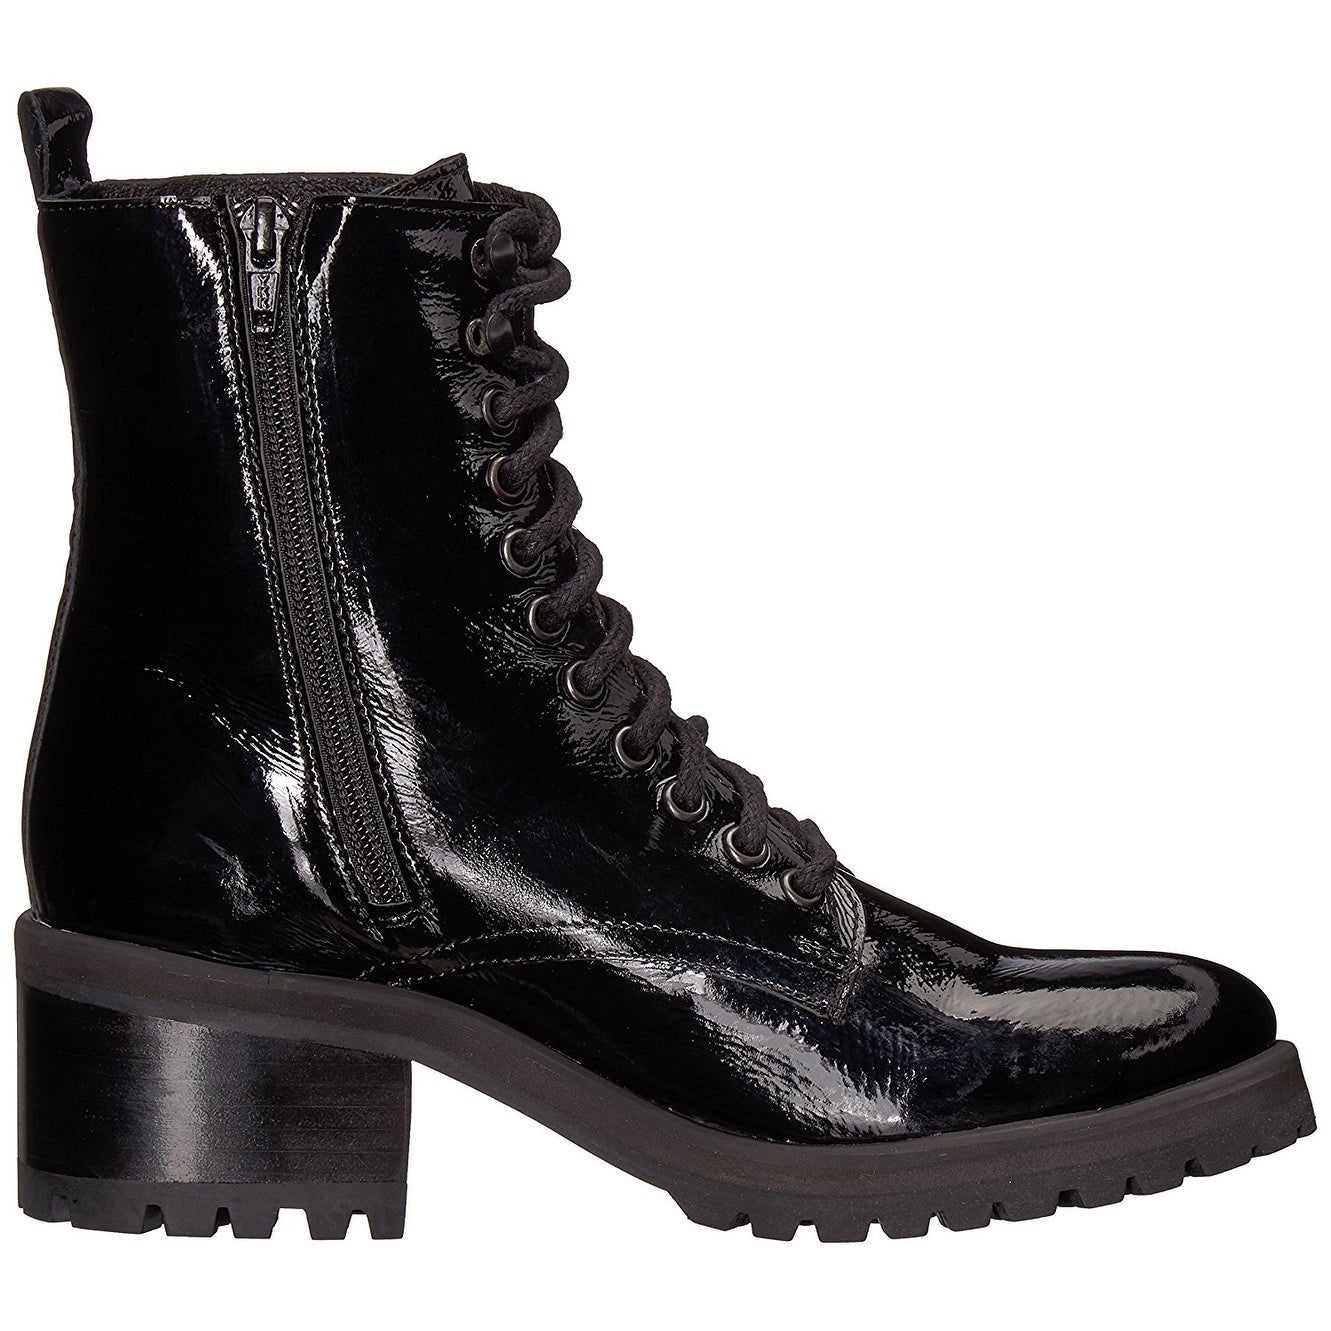 a4cb02ea2aa Shop Steve Madden Womens gene Closed Toe Mid-Calf Fashion Boots - Free  Shipping Today - Overstock - 22392422